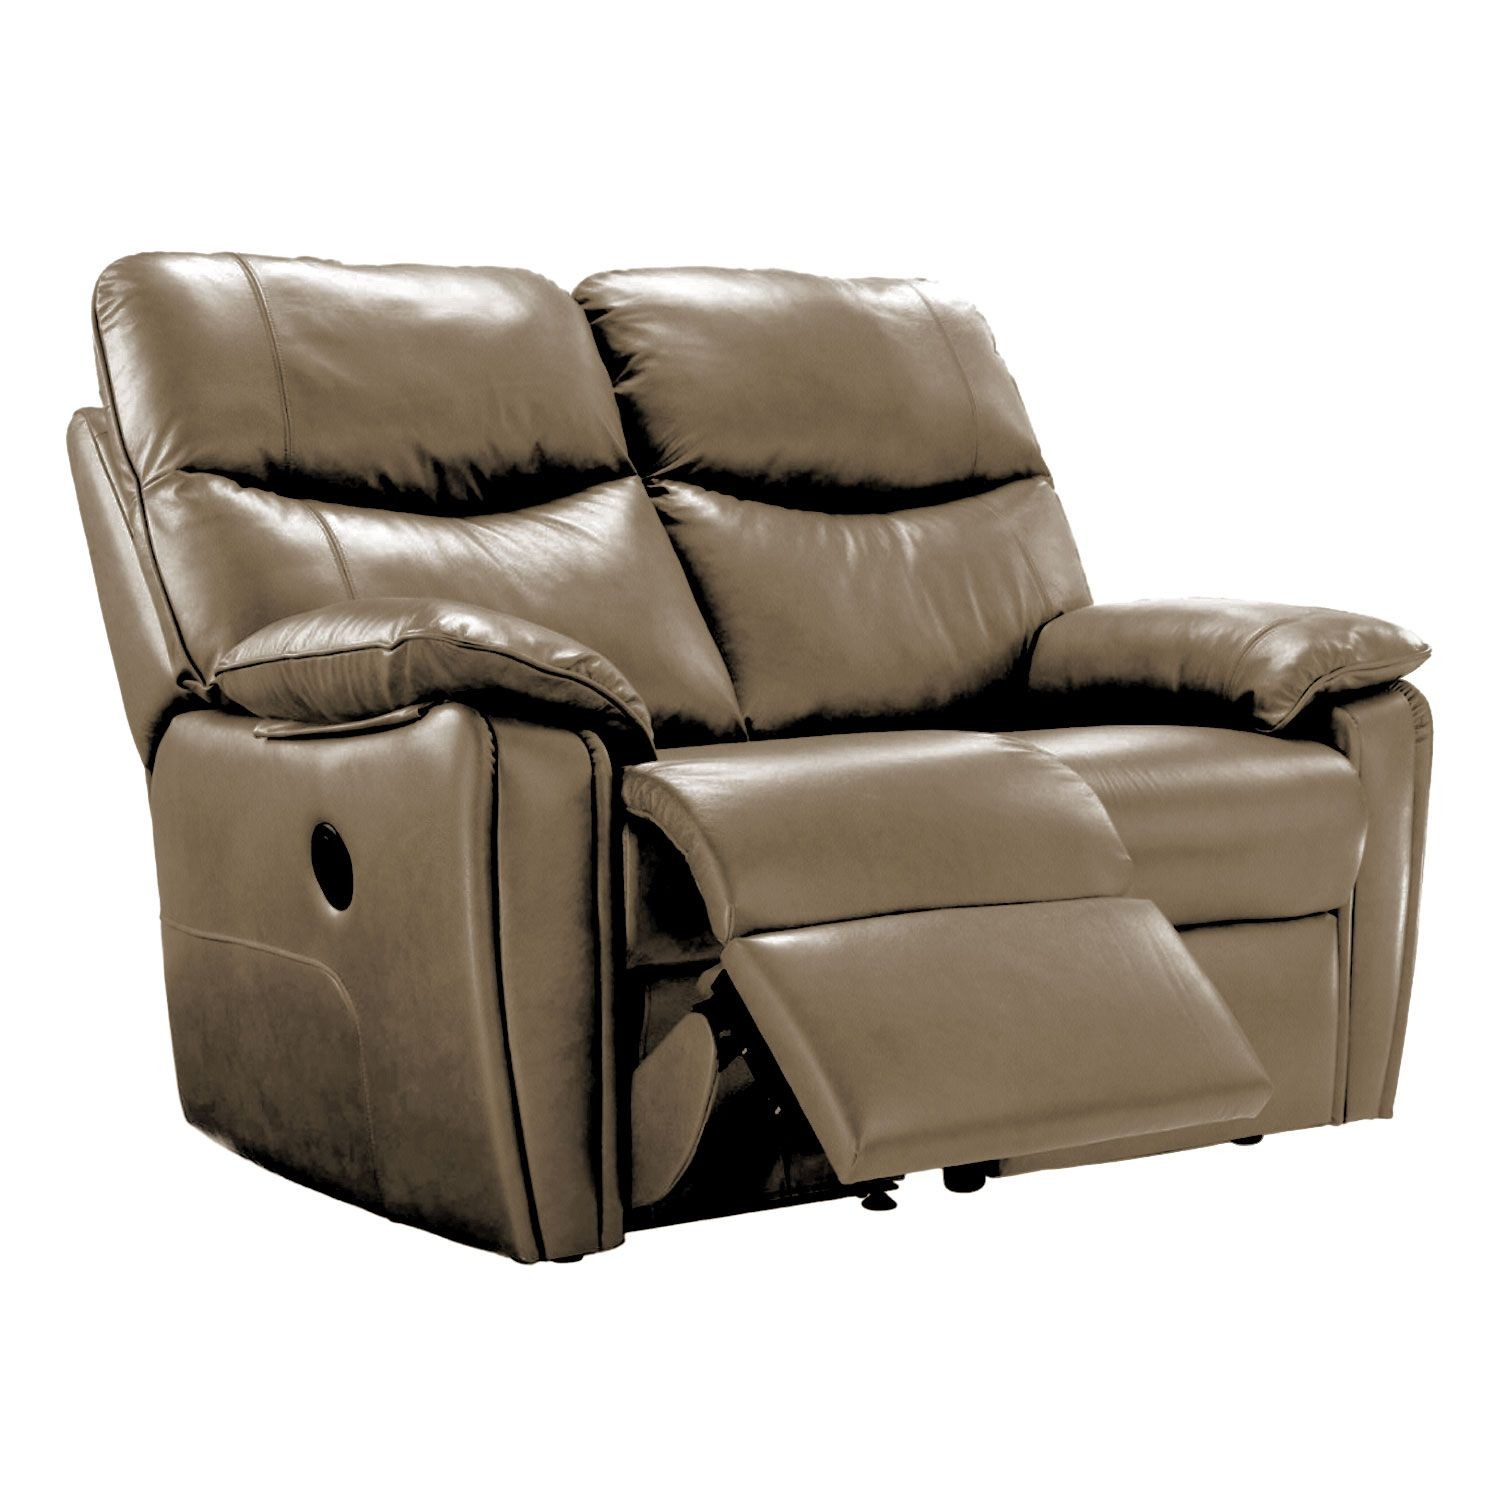 Astonishing G Plan Henley Two Seater Left Power Recliner Leather Sofa Bralicious Painted Fabric Chair Ideas Braliciousco